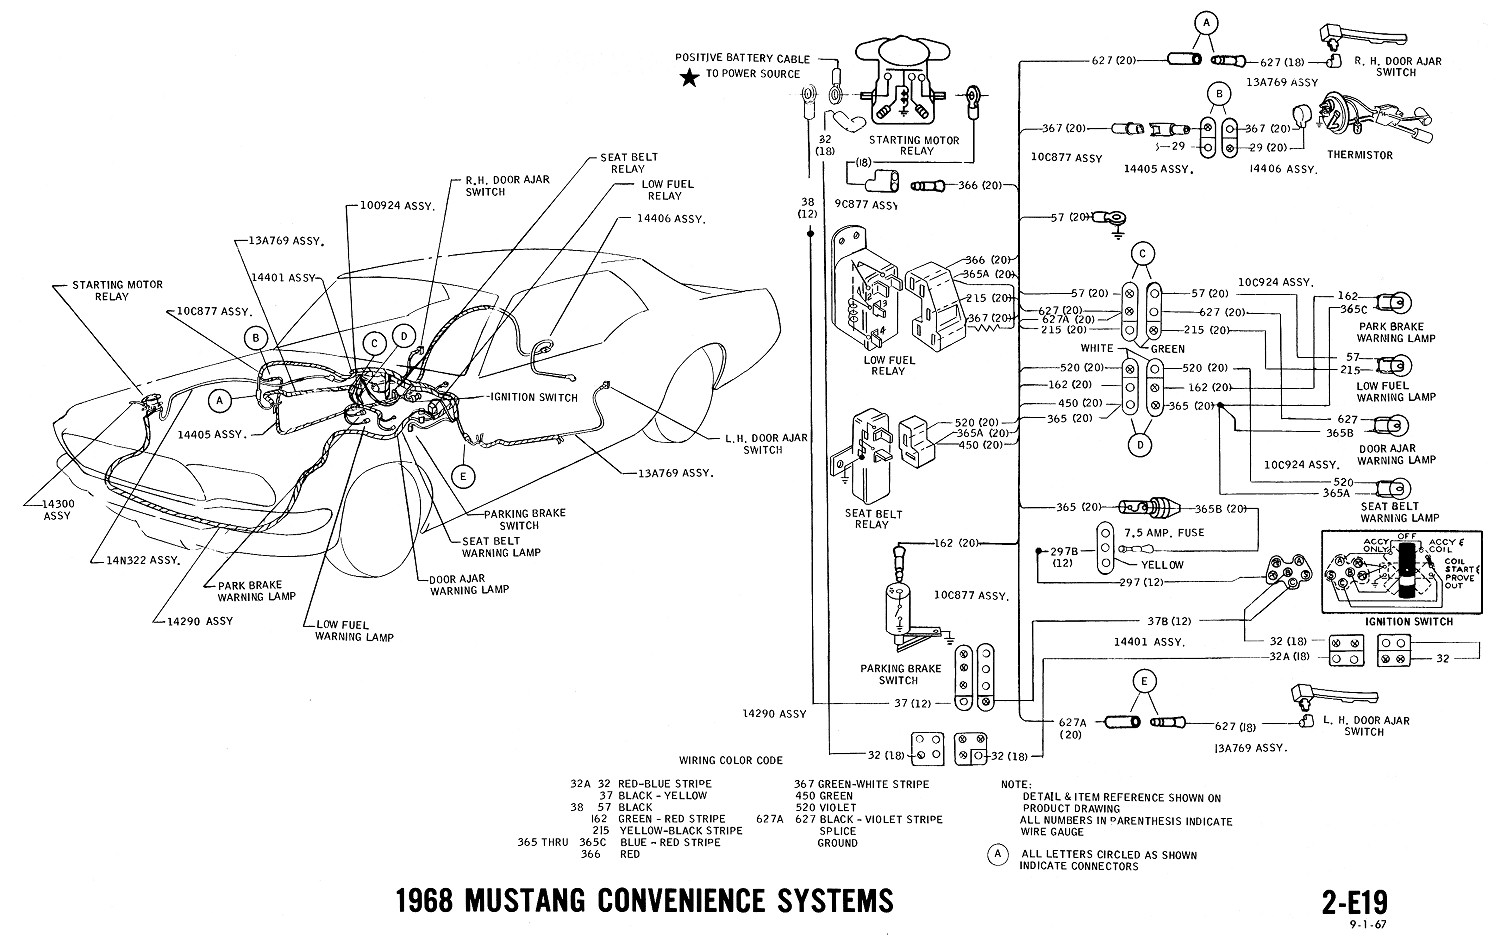 wiring diagram 1968 camaro headlight vacuum diagram 2002 ford ranger rh koloewrty co